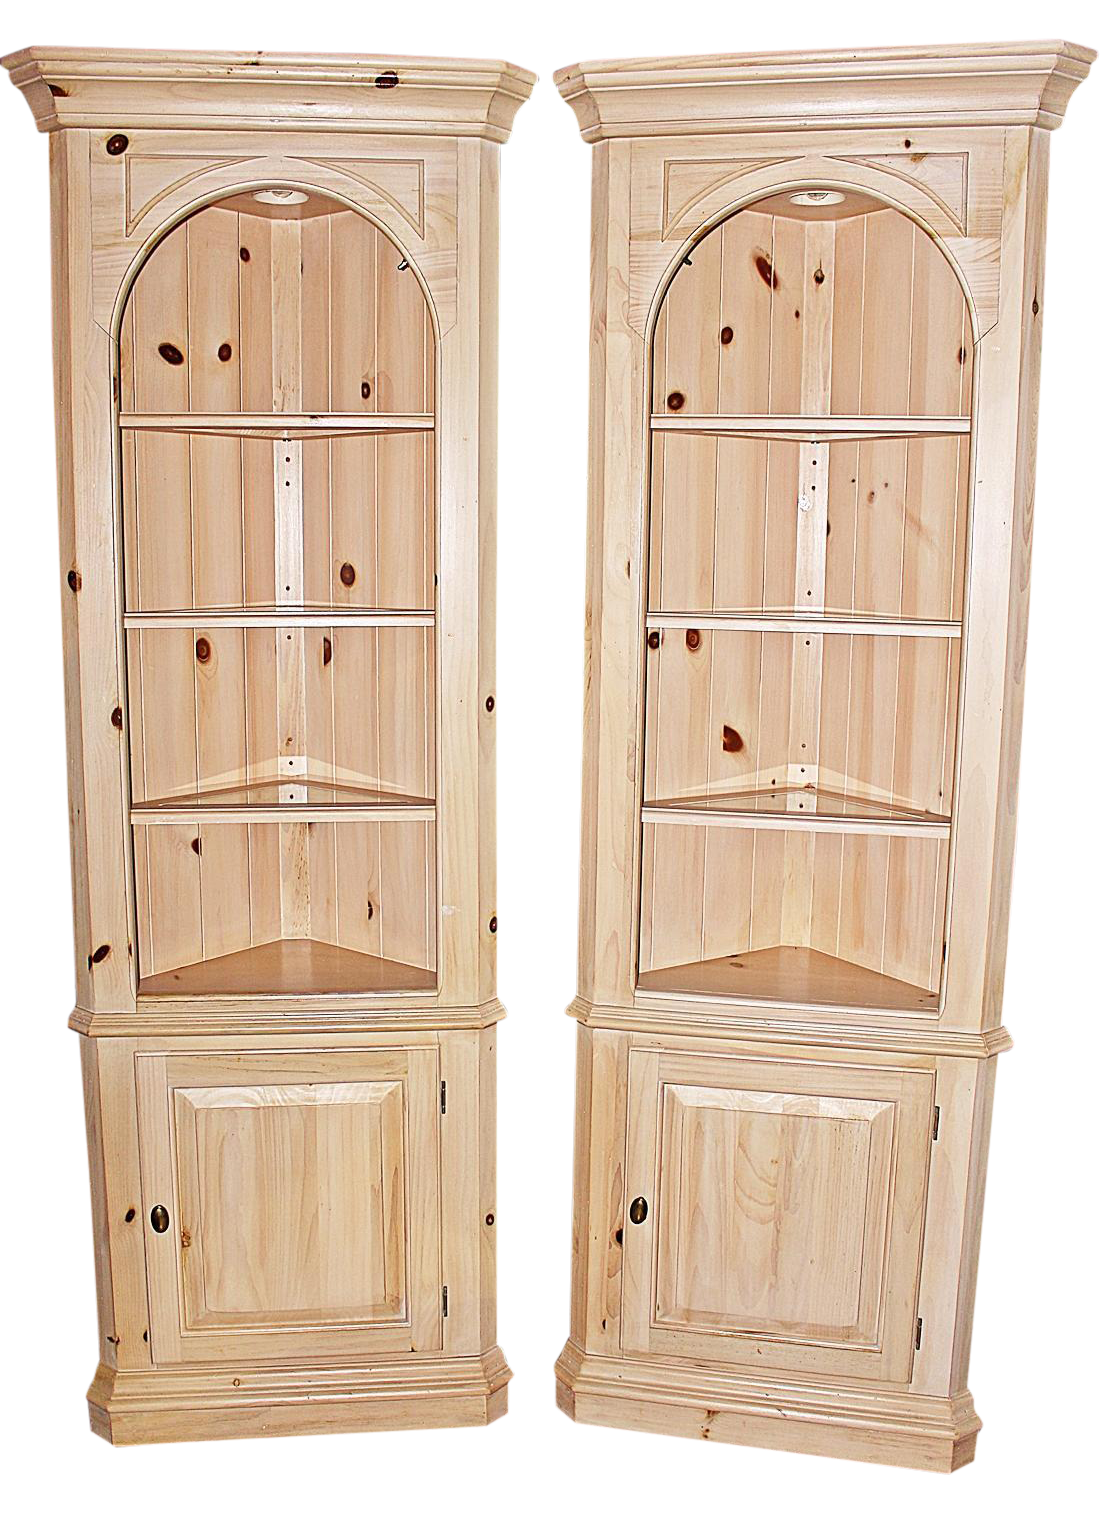 double free as brown cabinets corner designs photos cabinet shapes and lovely standing decorate wooden floors intriguing top triangle doors inspiration on cor furniture installing with decors small views interior